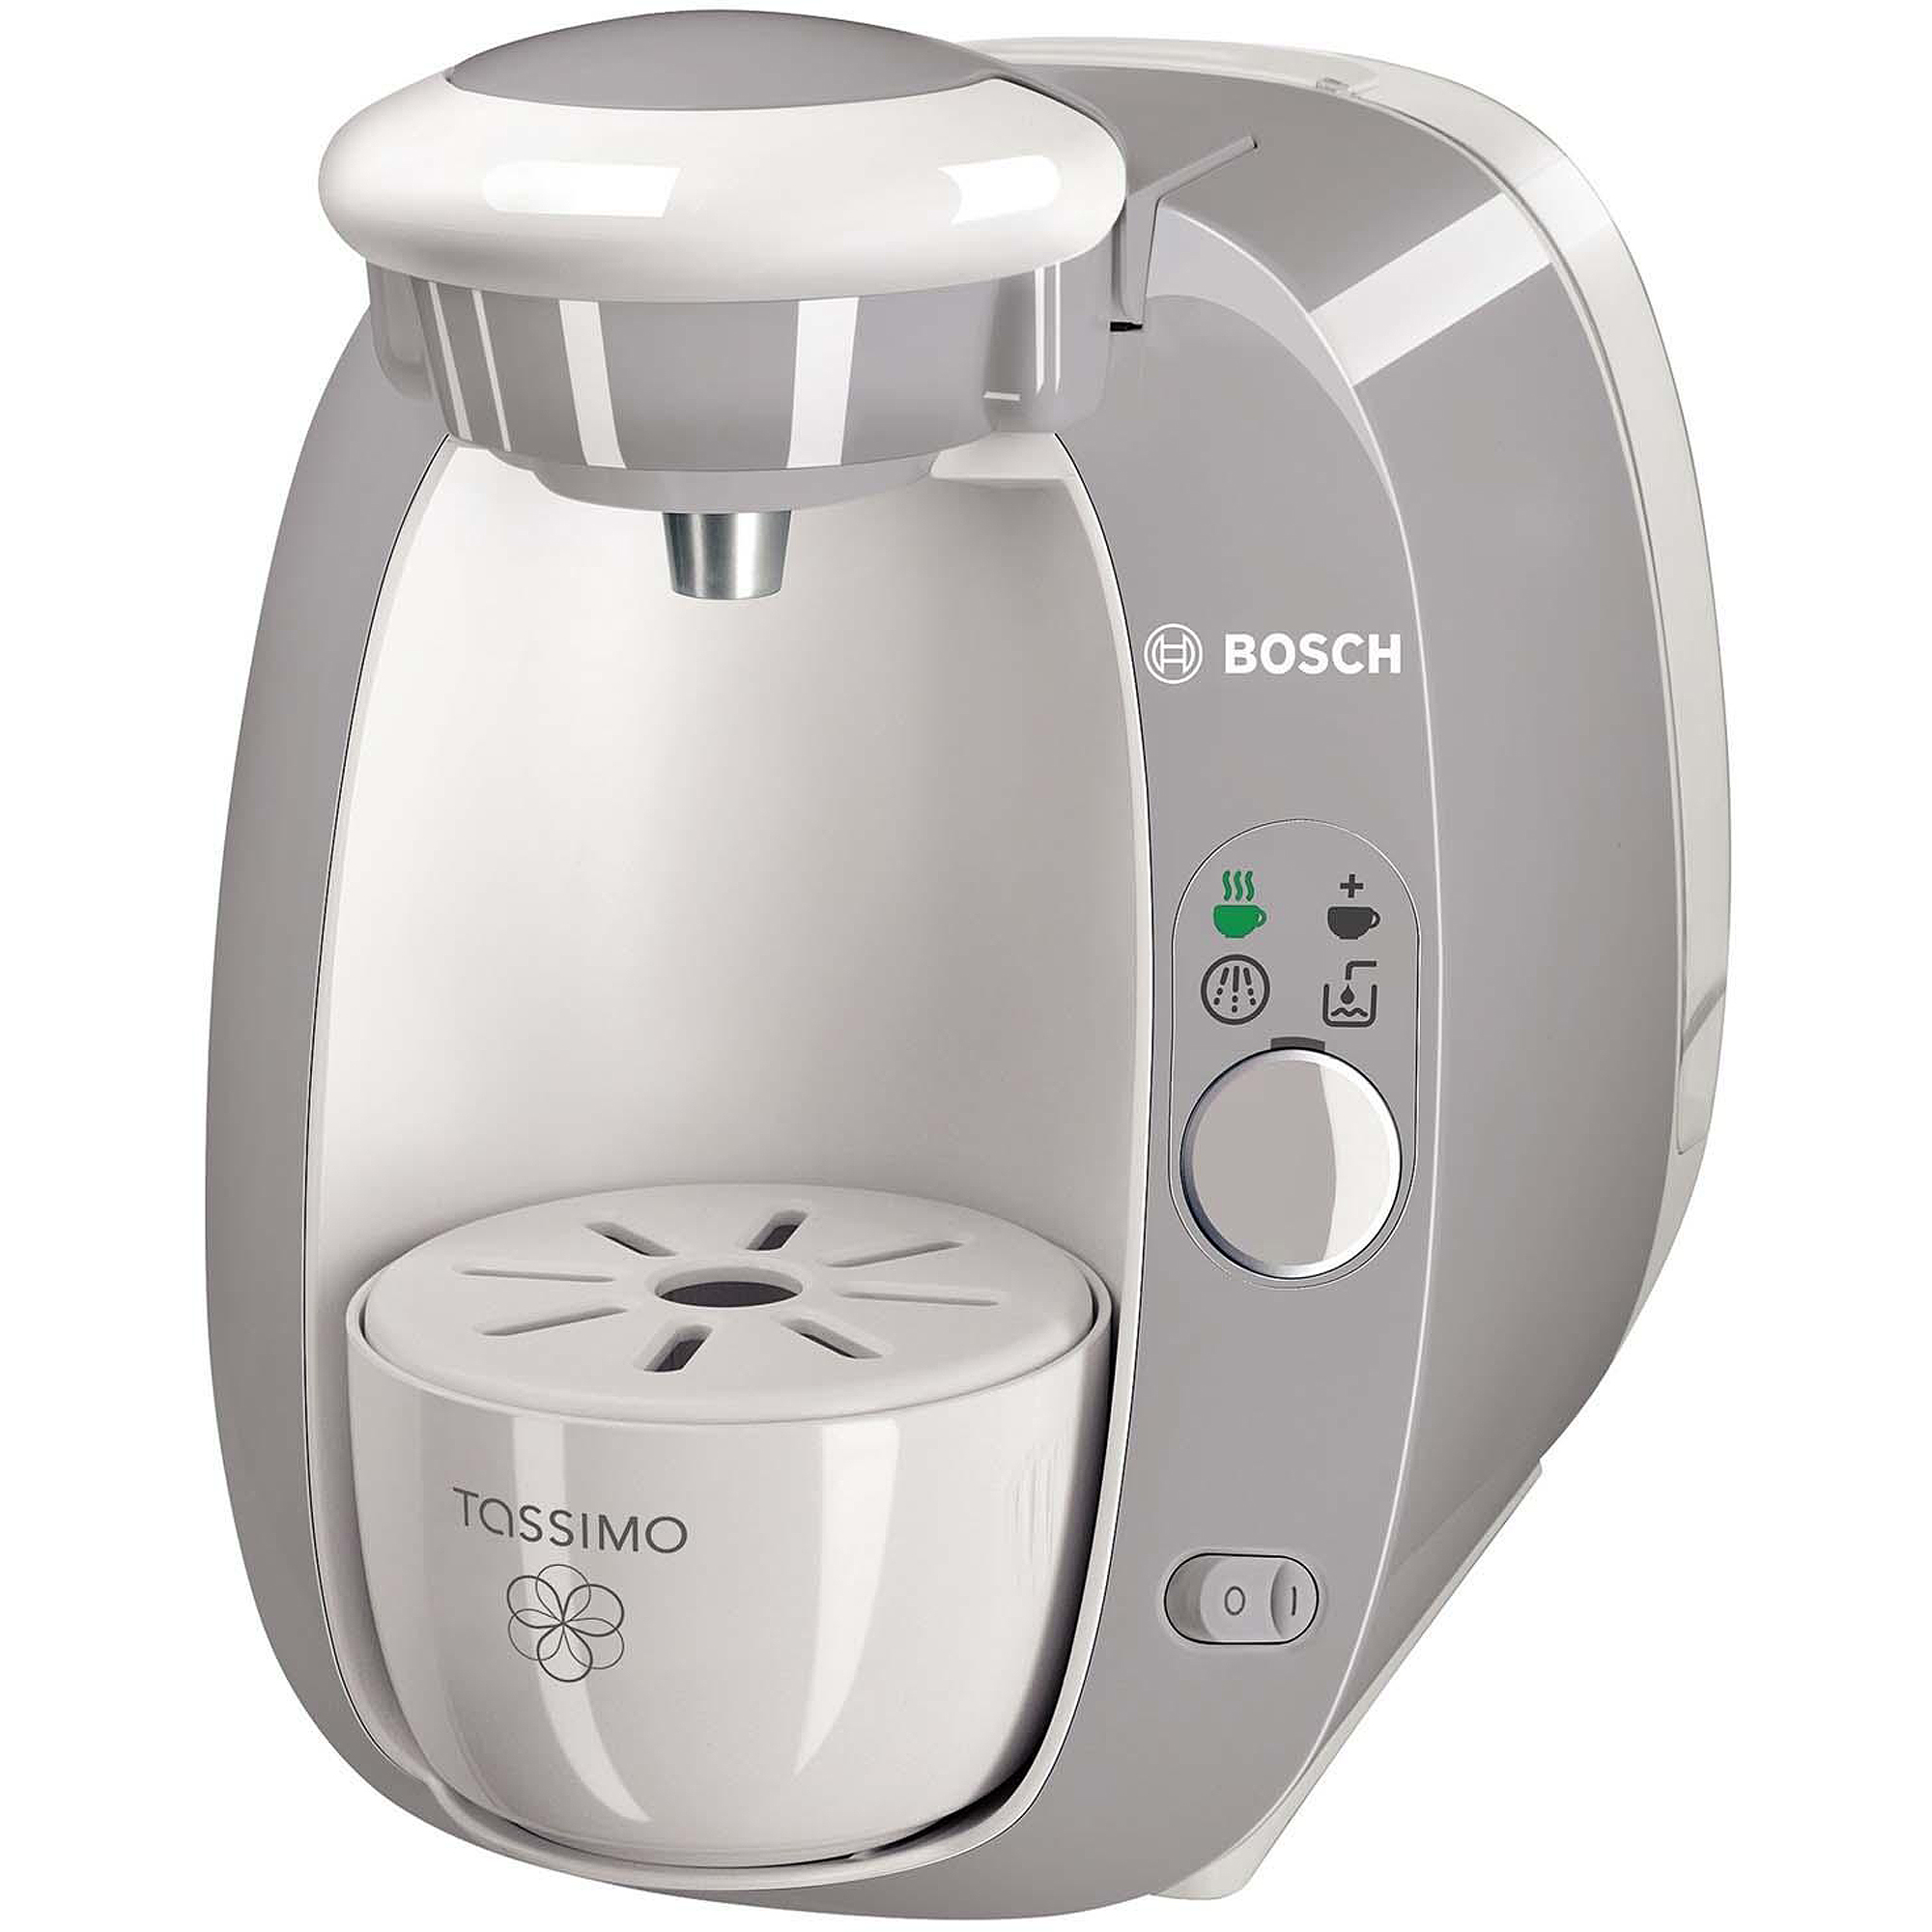 Electronic Bosch Tassimo T20 Coffee Machine bosch tassimo t20 beverage system and coffee brewer grey walmart com